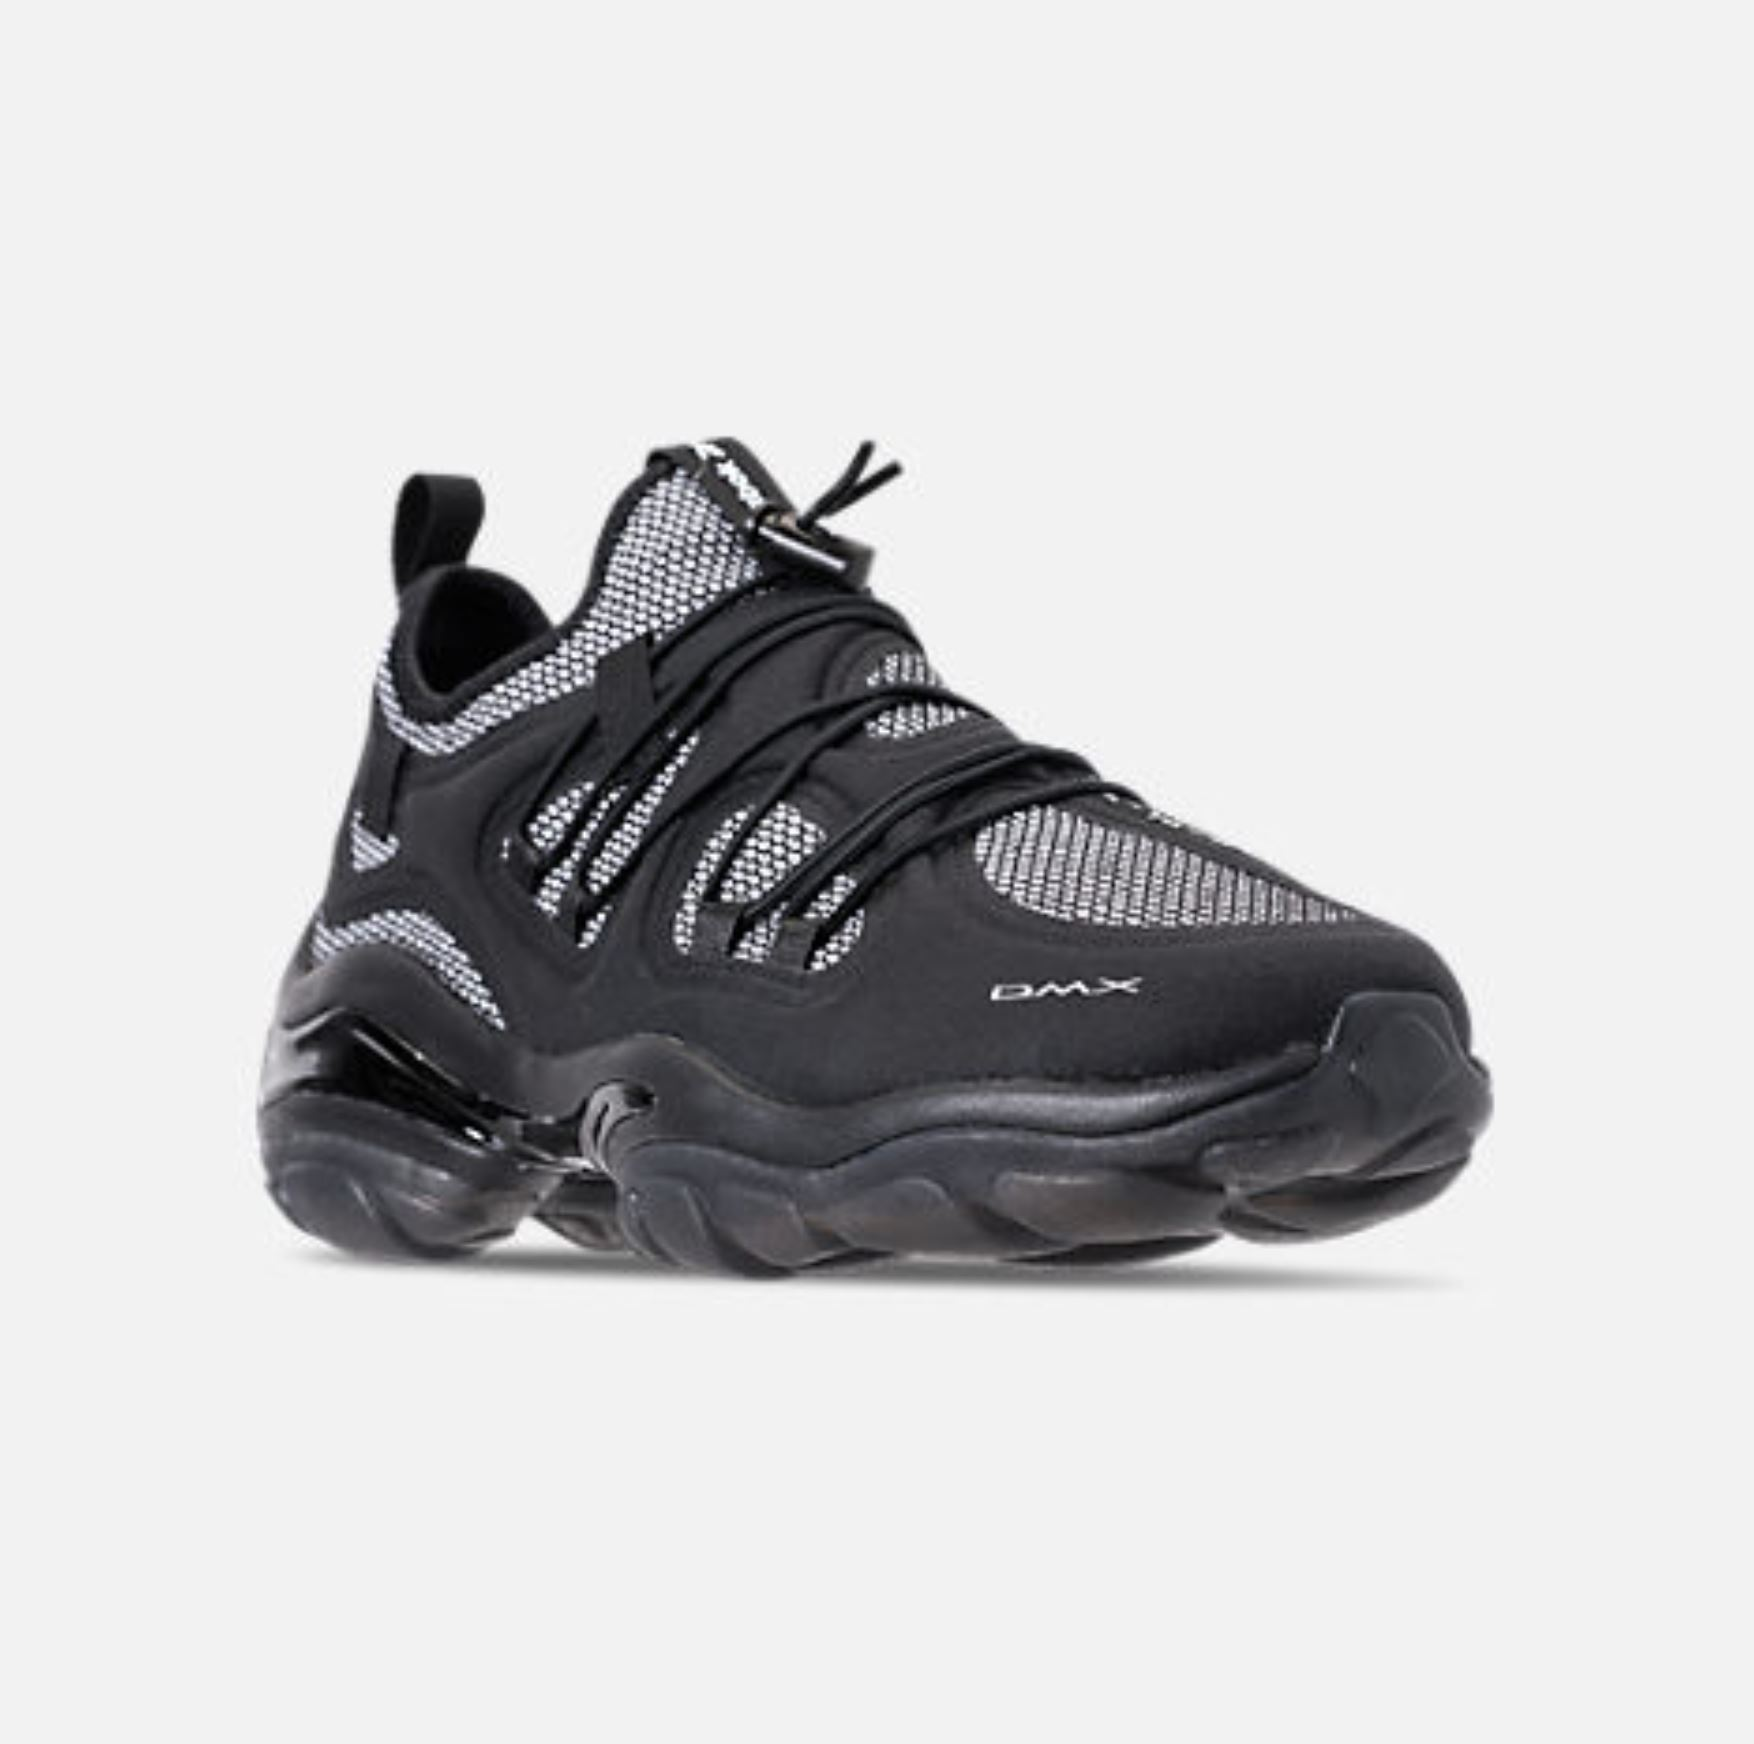 swizz beatz reebok dmx series 2000 black - WearTesters 31ec6952d8d8